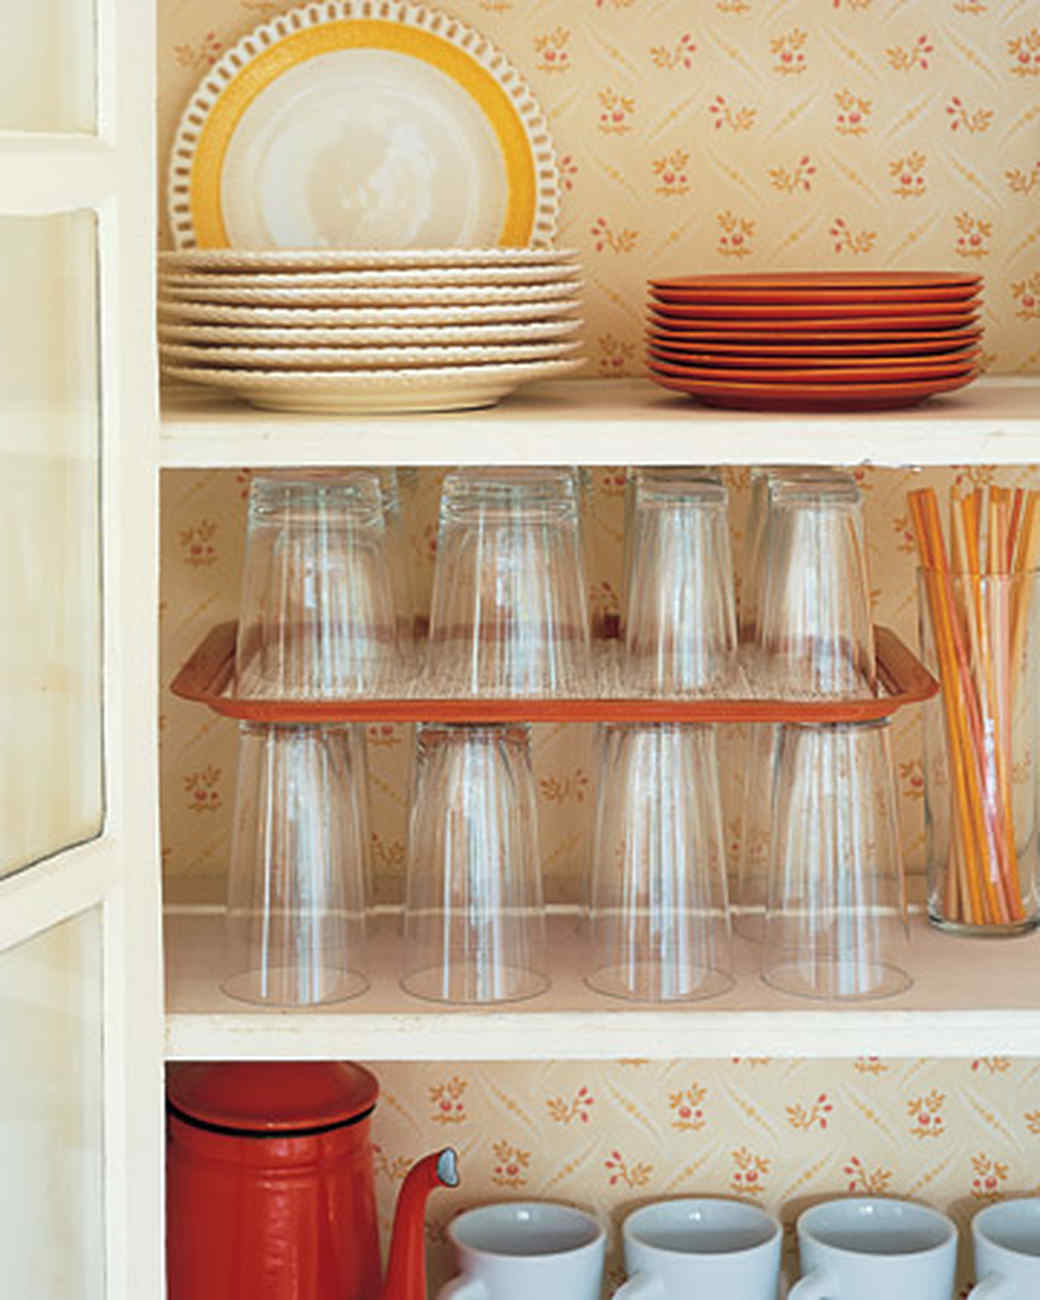 Organize Your Kitchen Cabinets In Easy Steps Martha Stewart - How to organize kitchen cabinets martha stewart